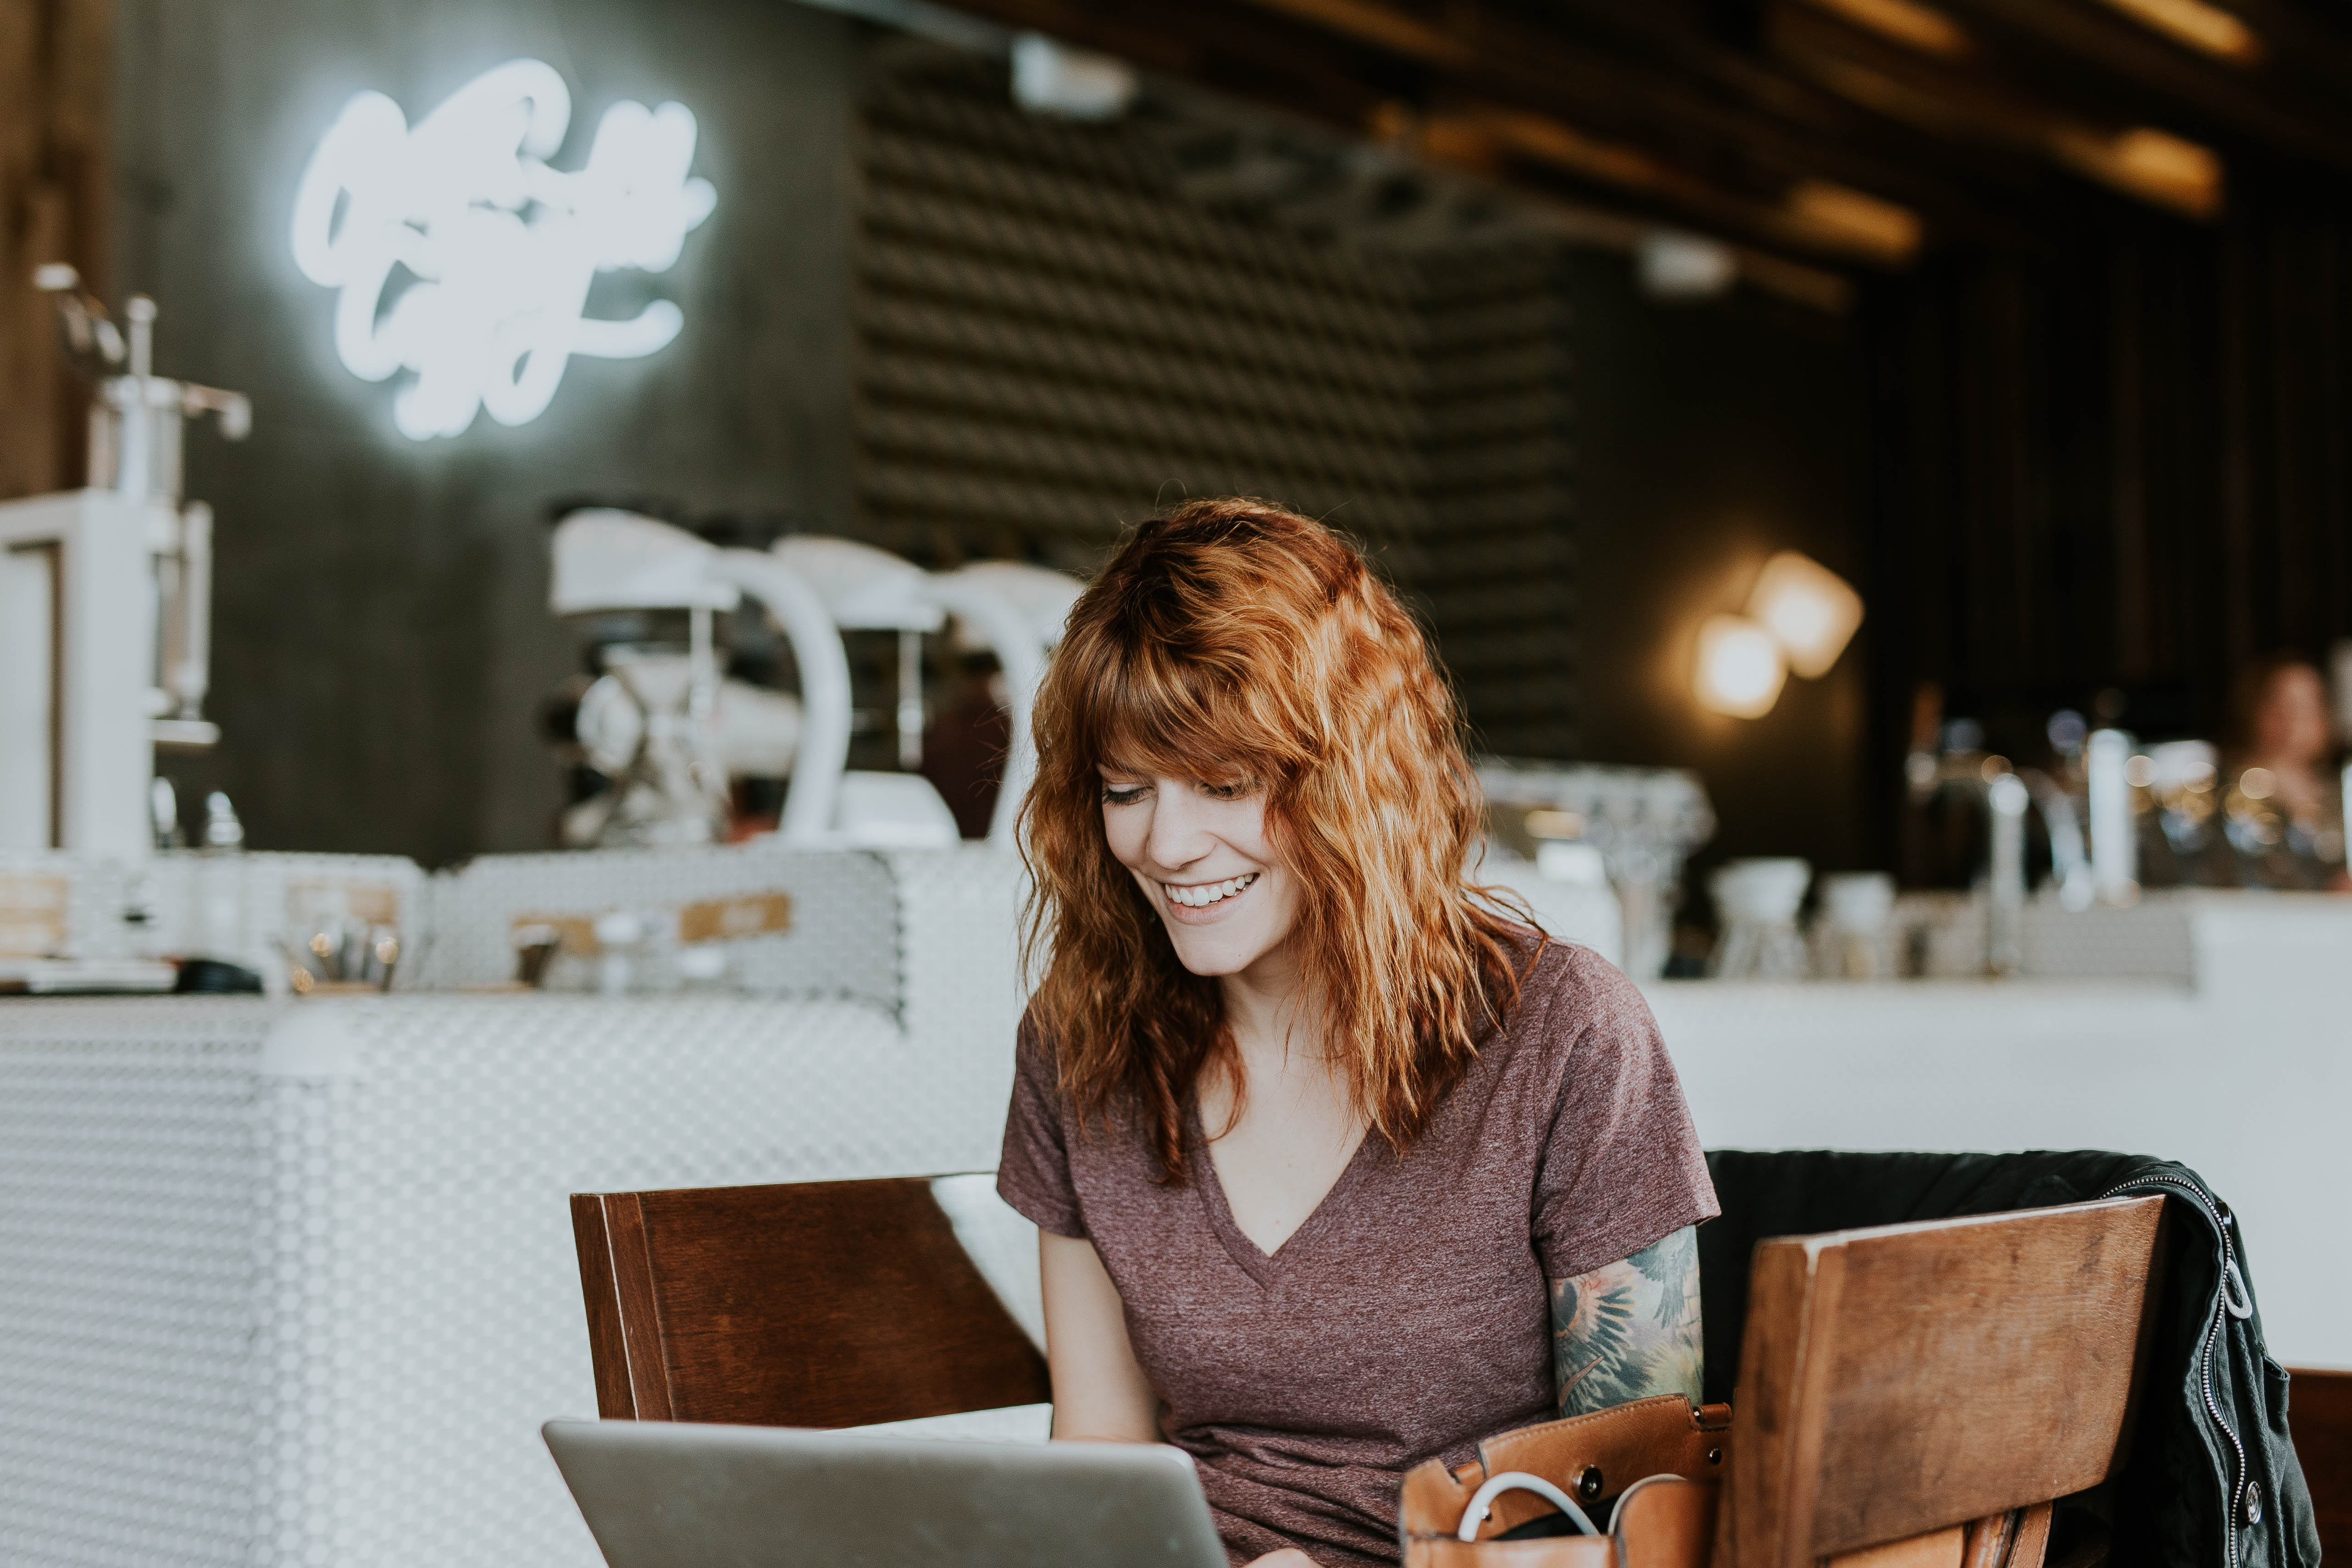 Woman reviews the best crowdfunding platforms in Australia